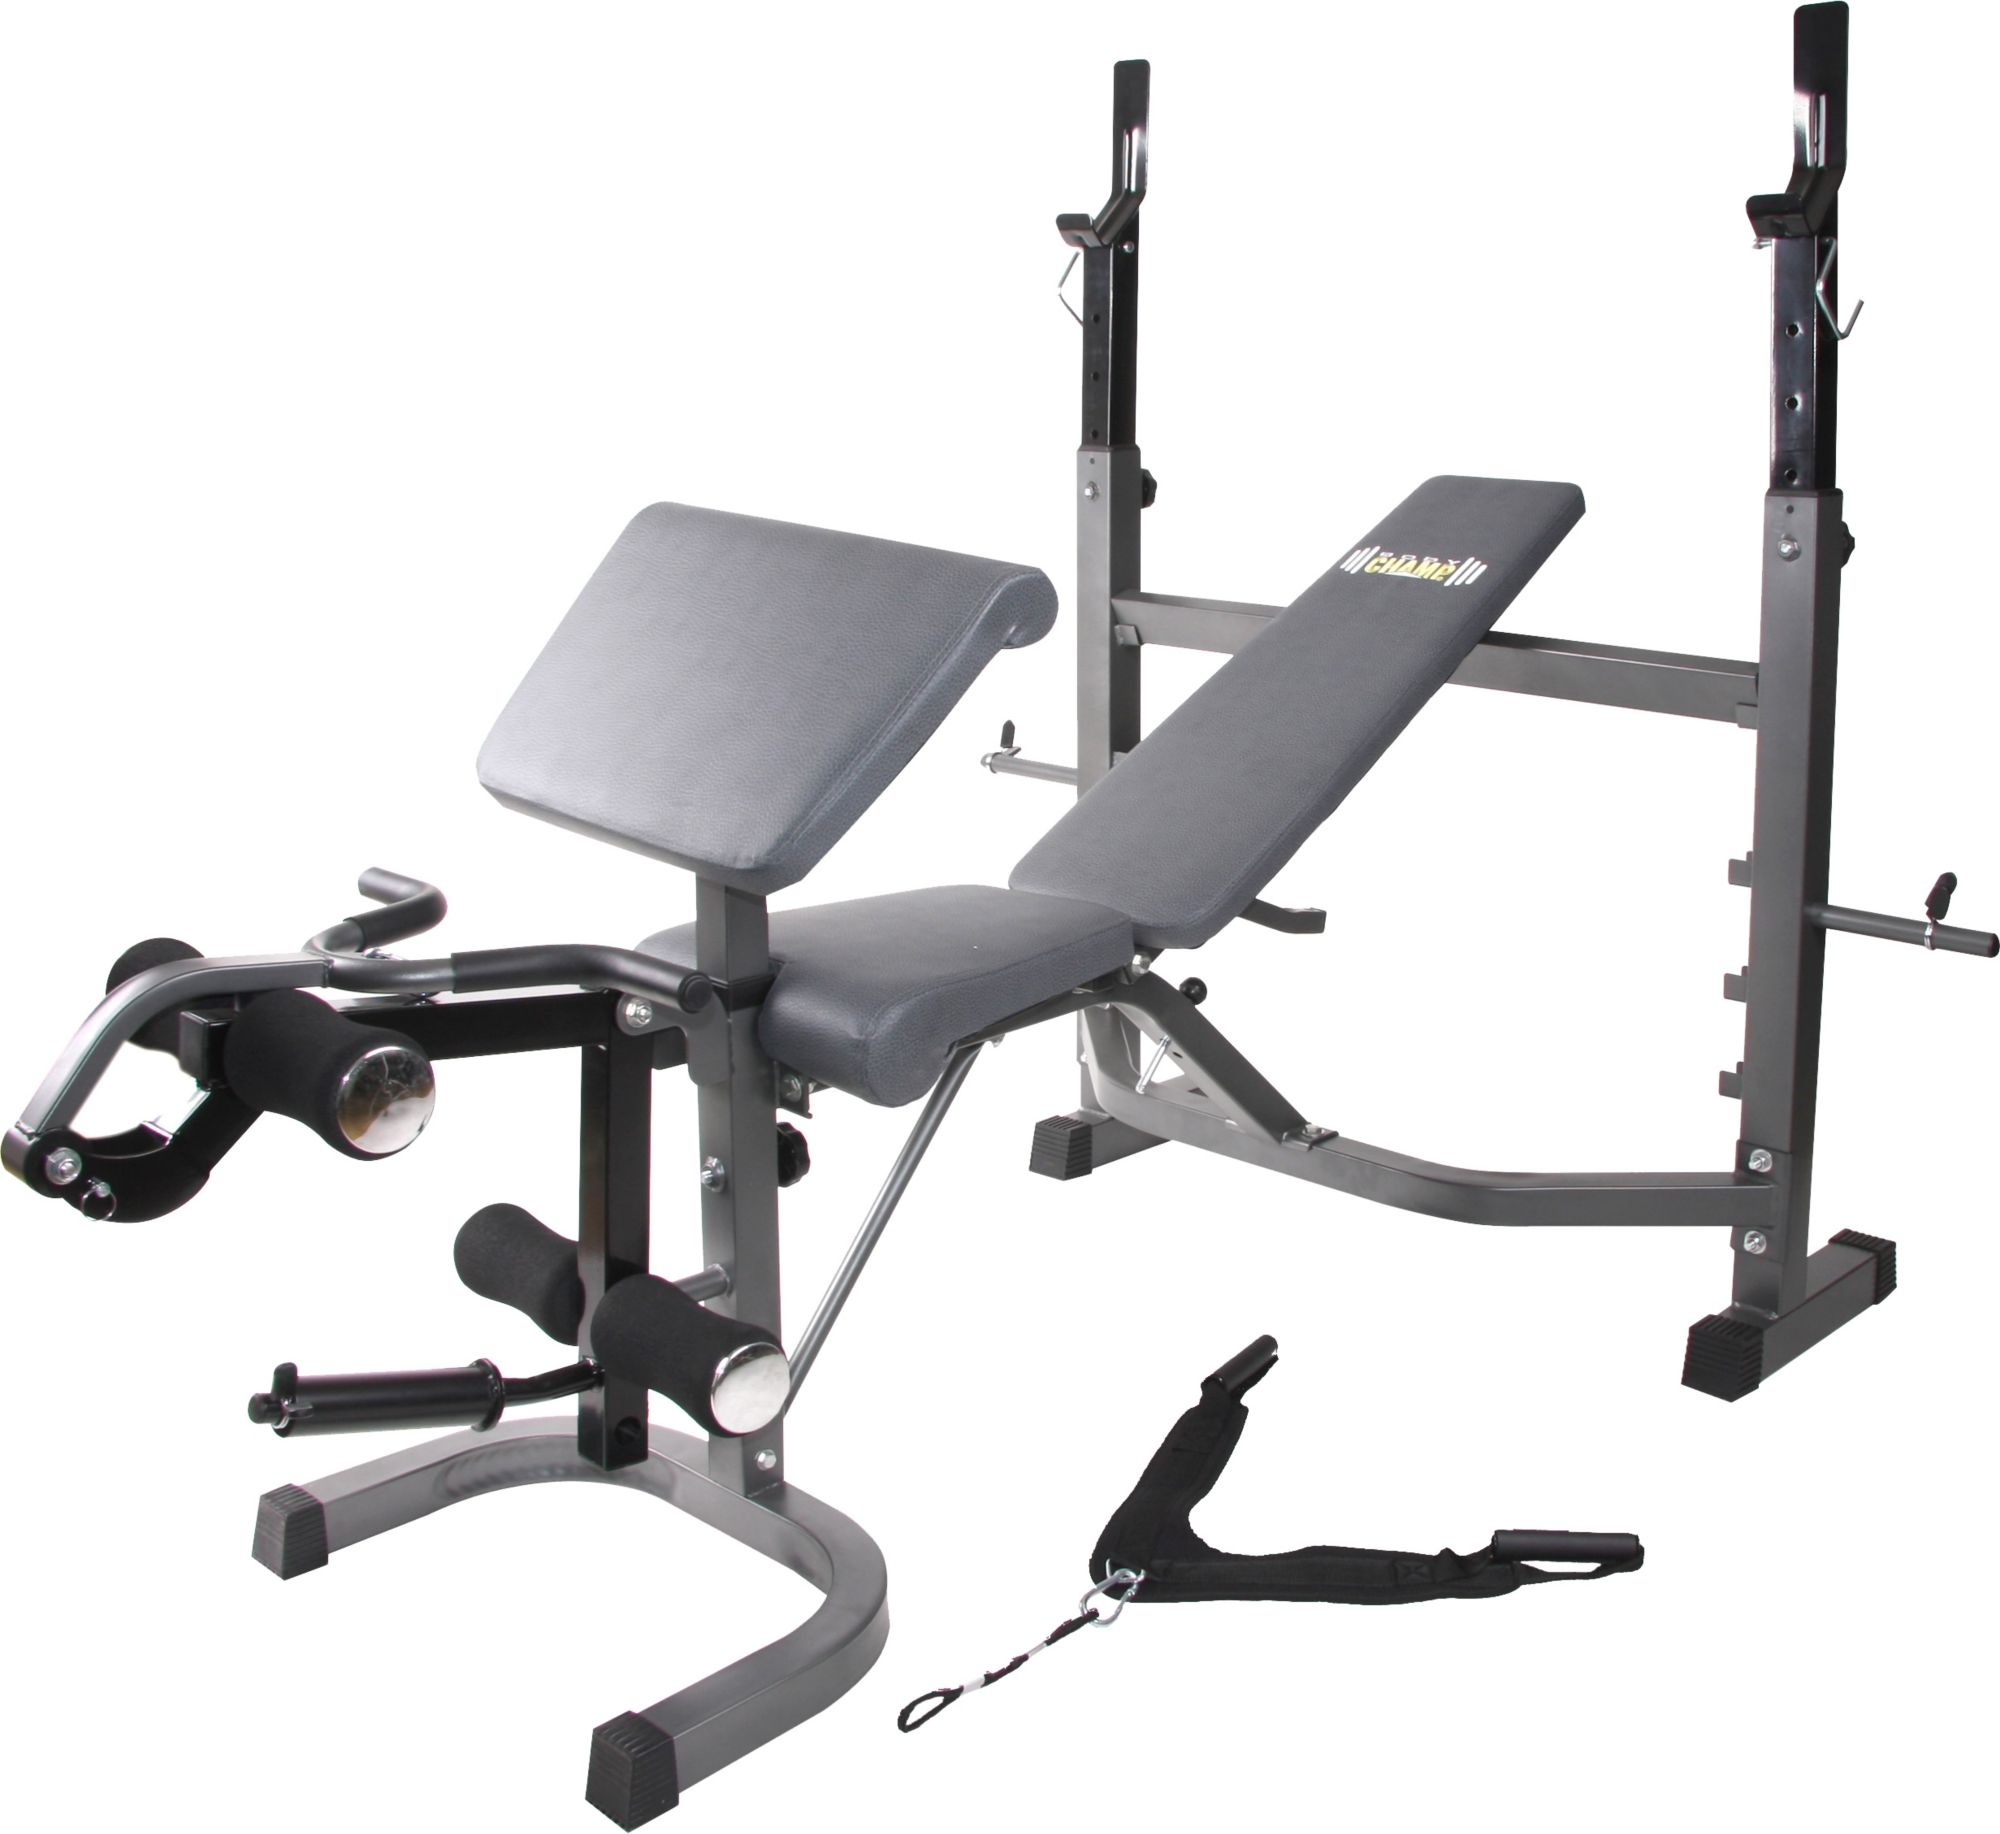 gym golds gold home s depot p the xr olympic bench weight benches